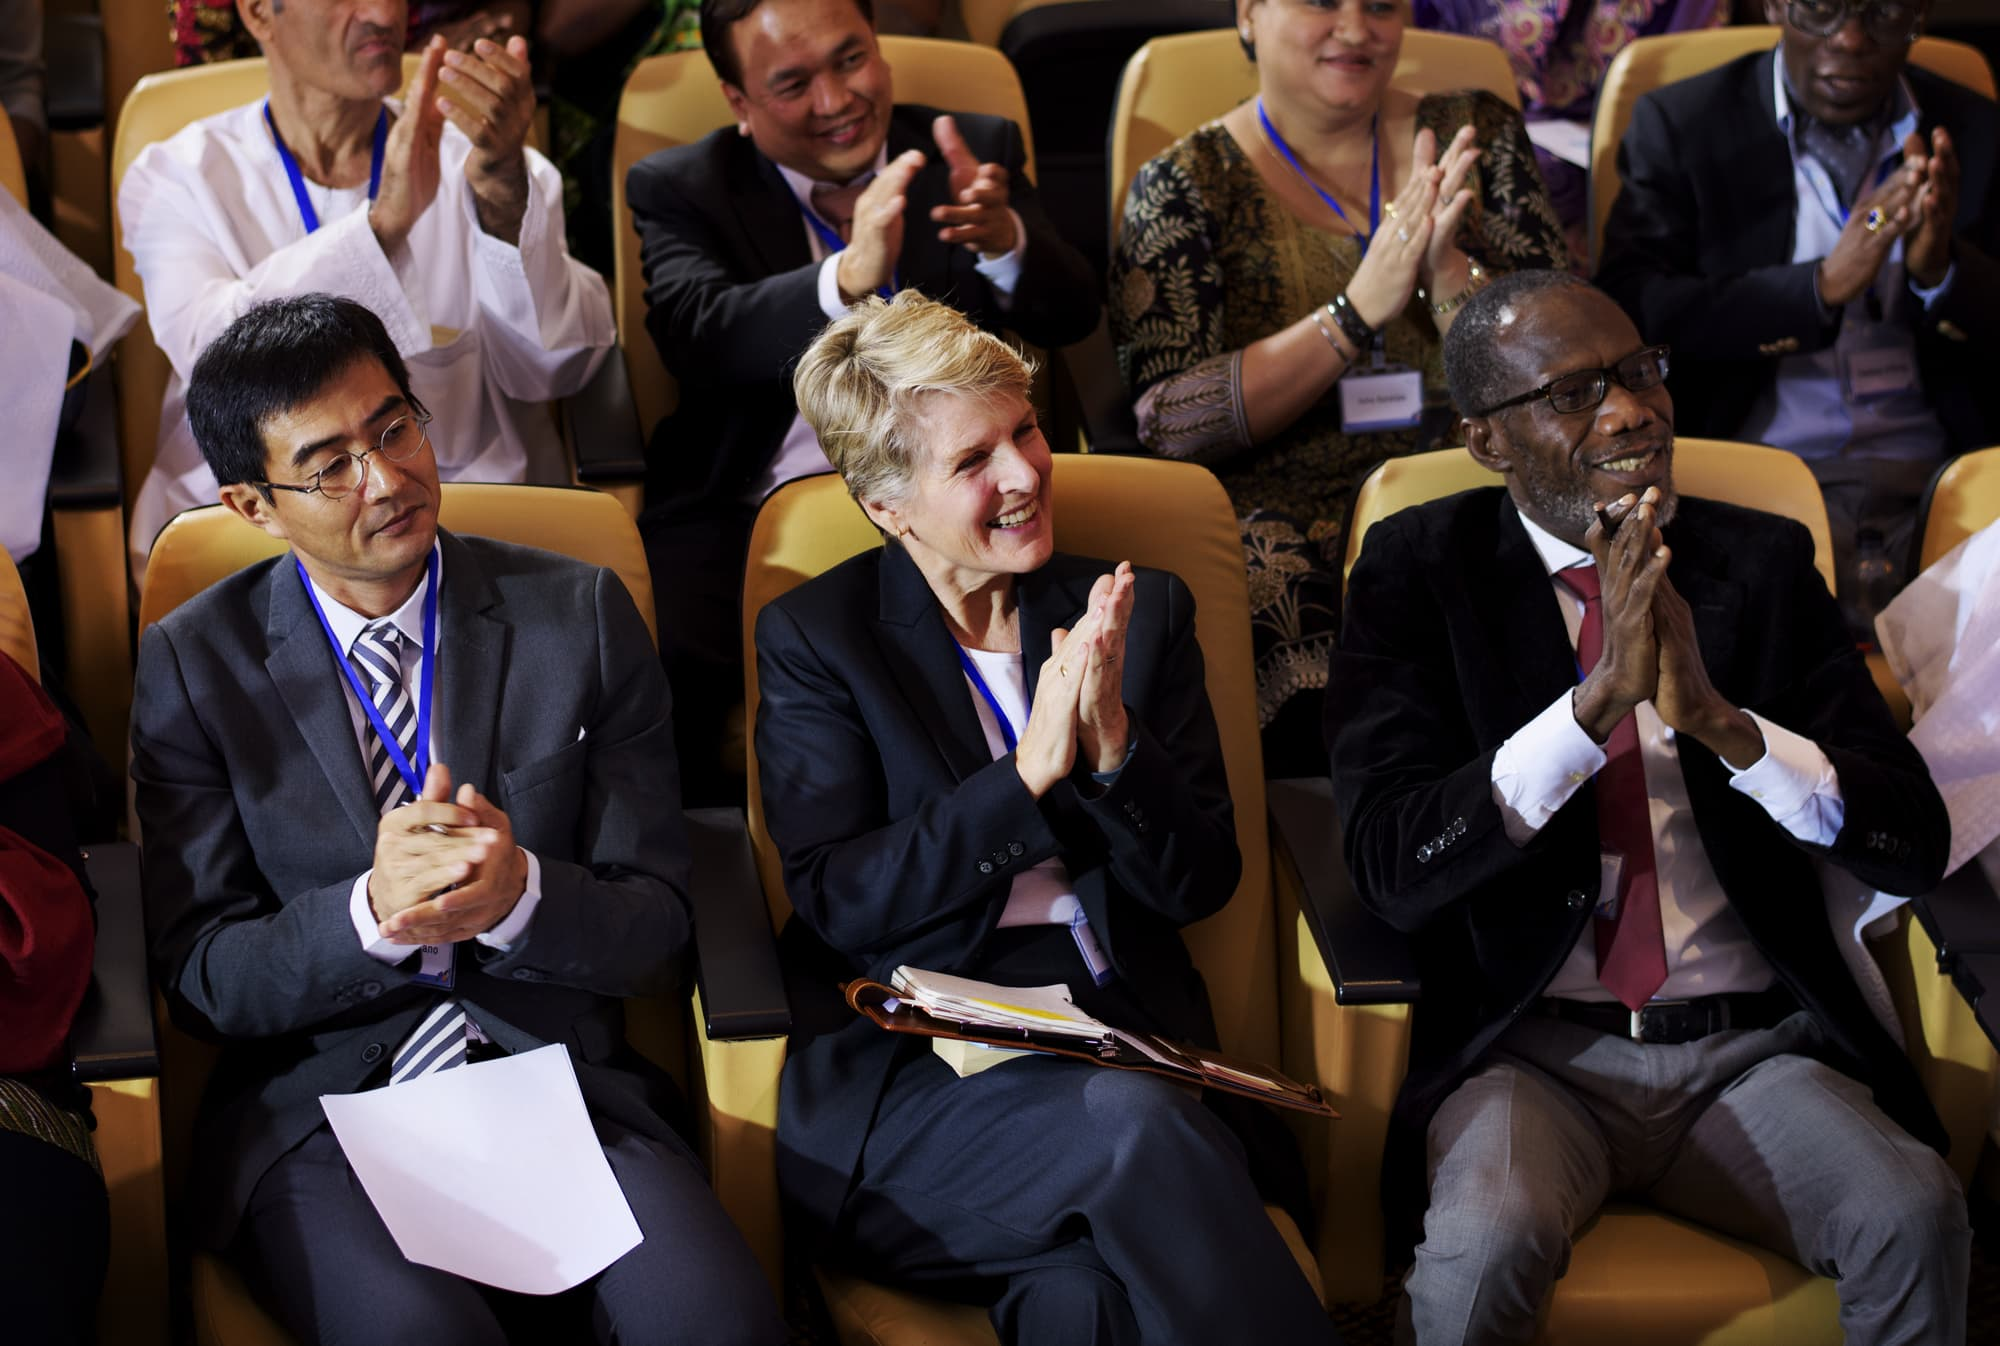 Diverse People Clapping Hands Conference